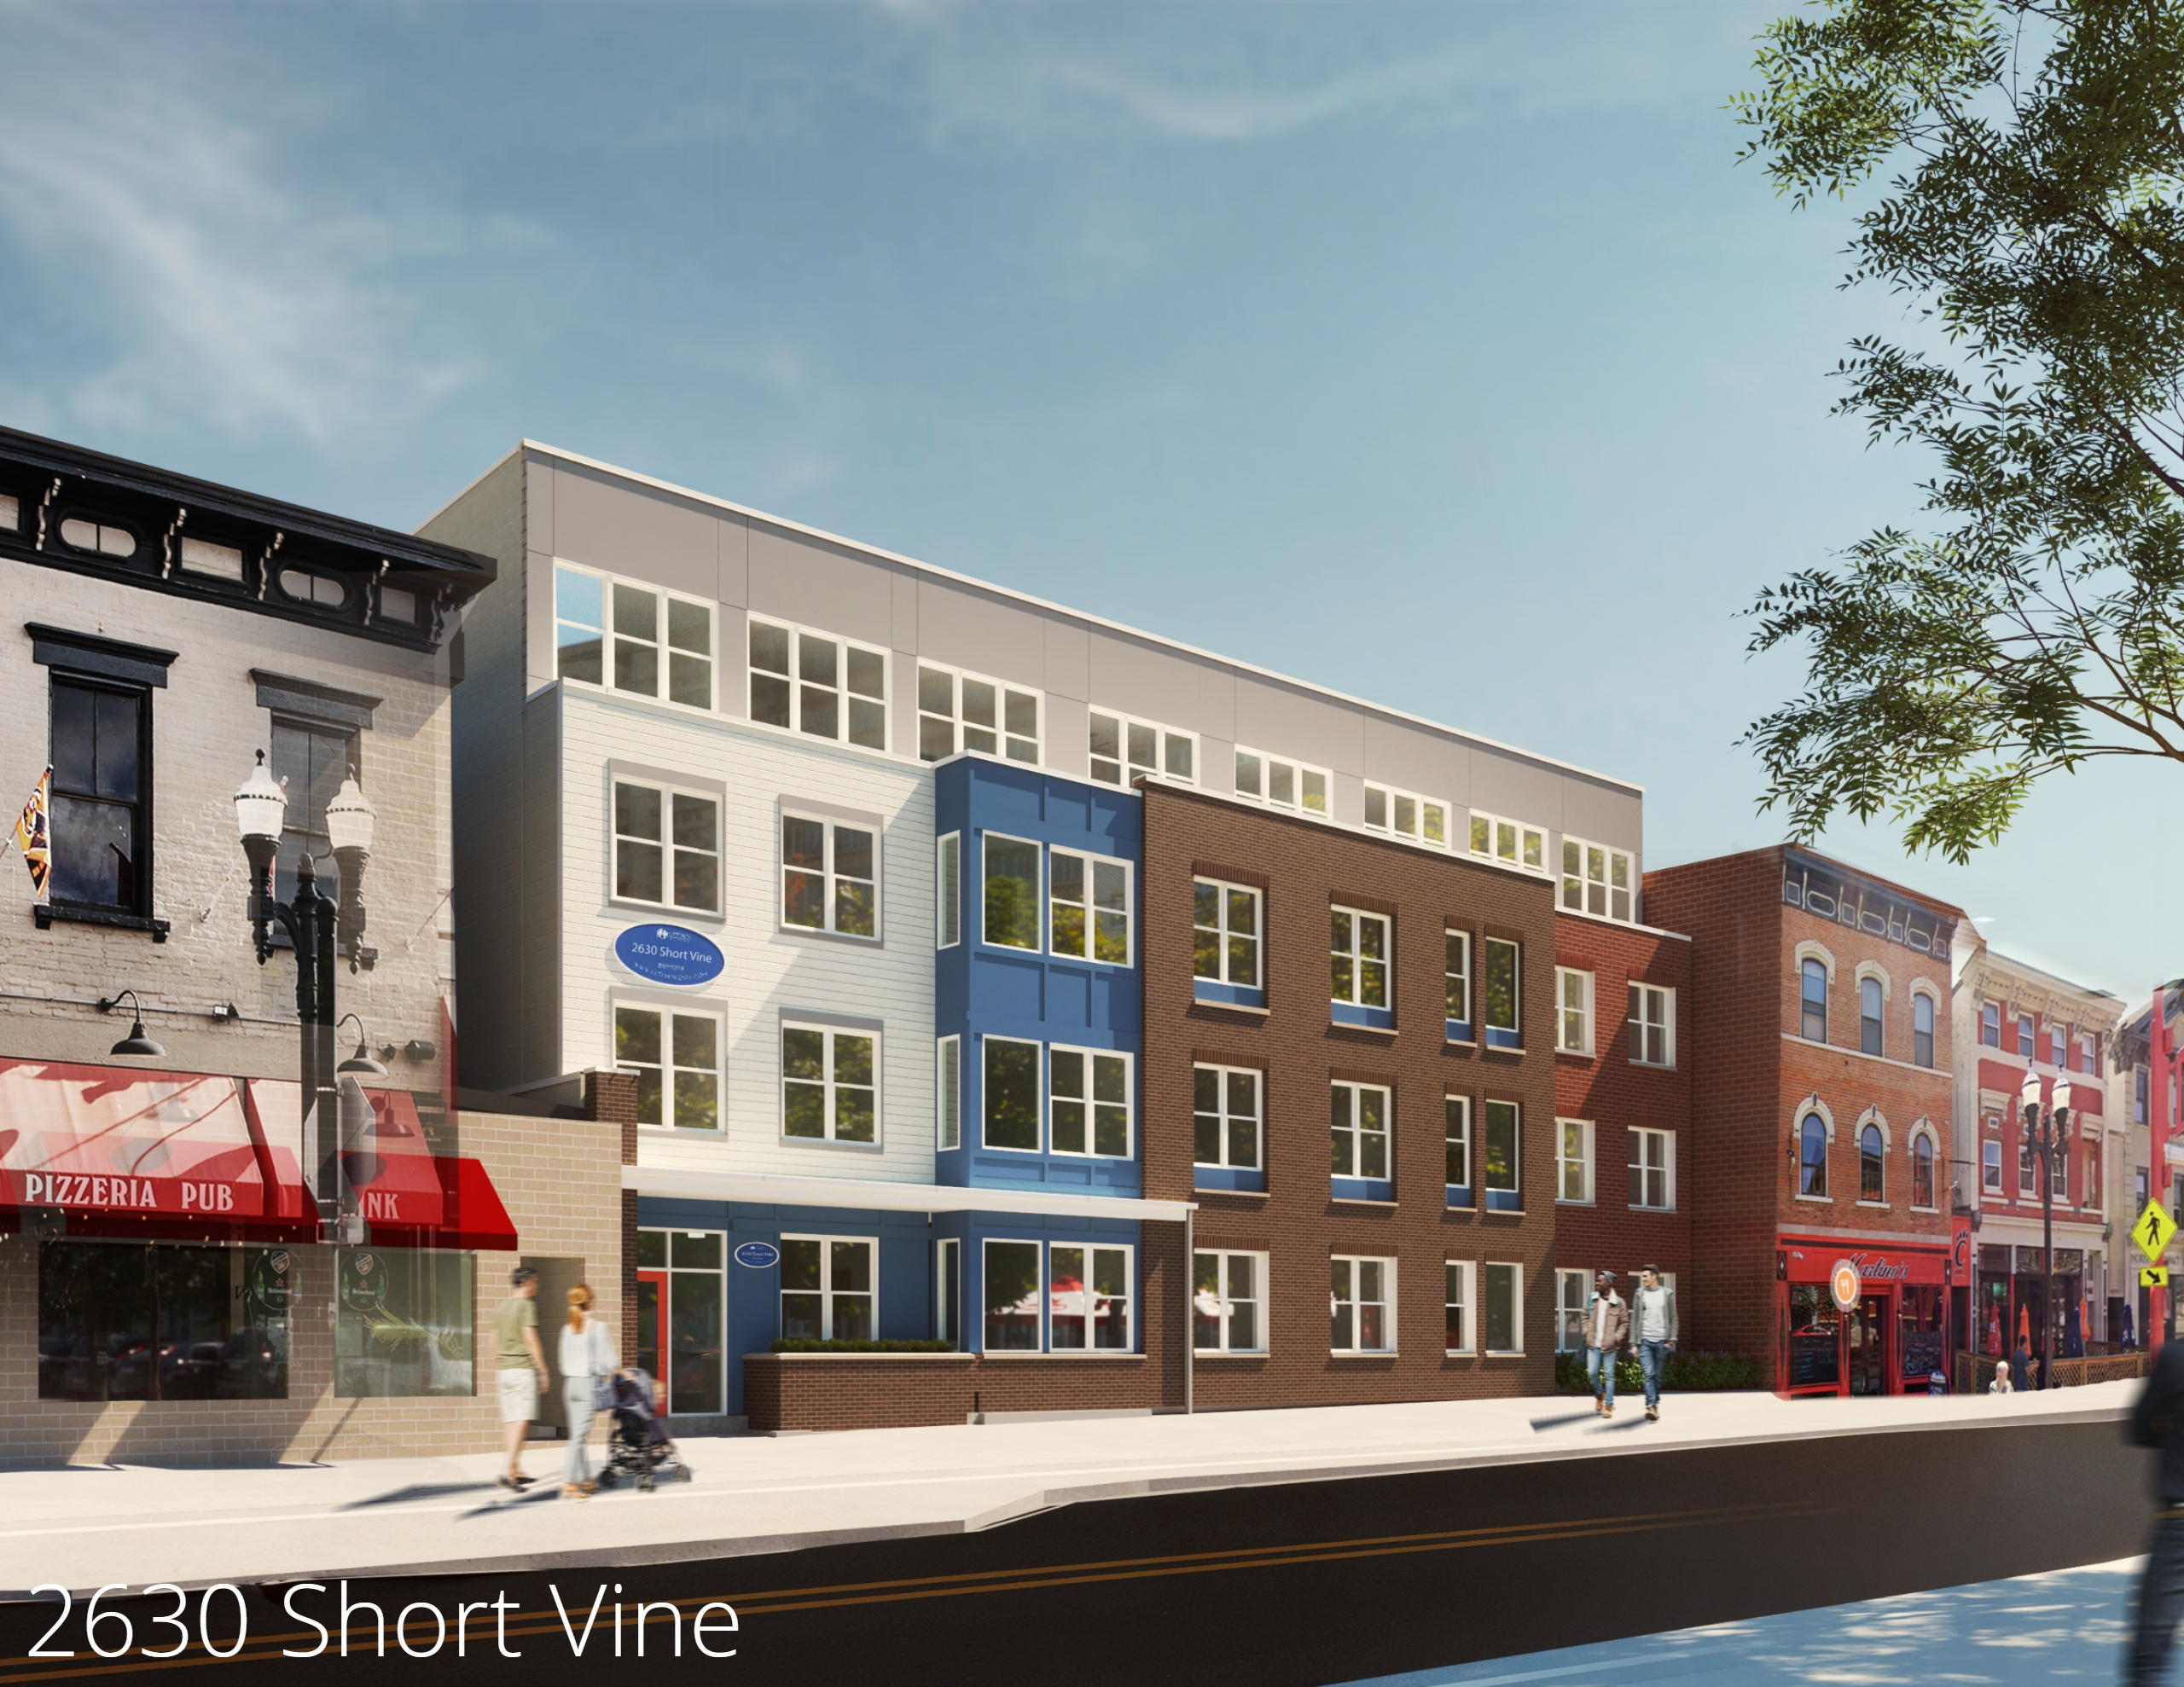 2630 Short Vine apartments